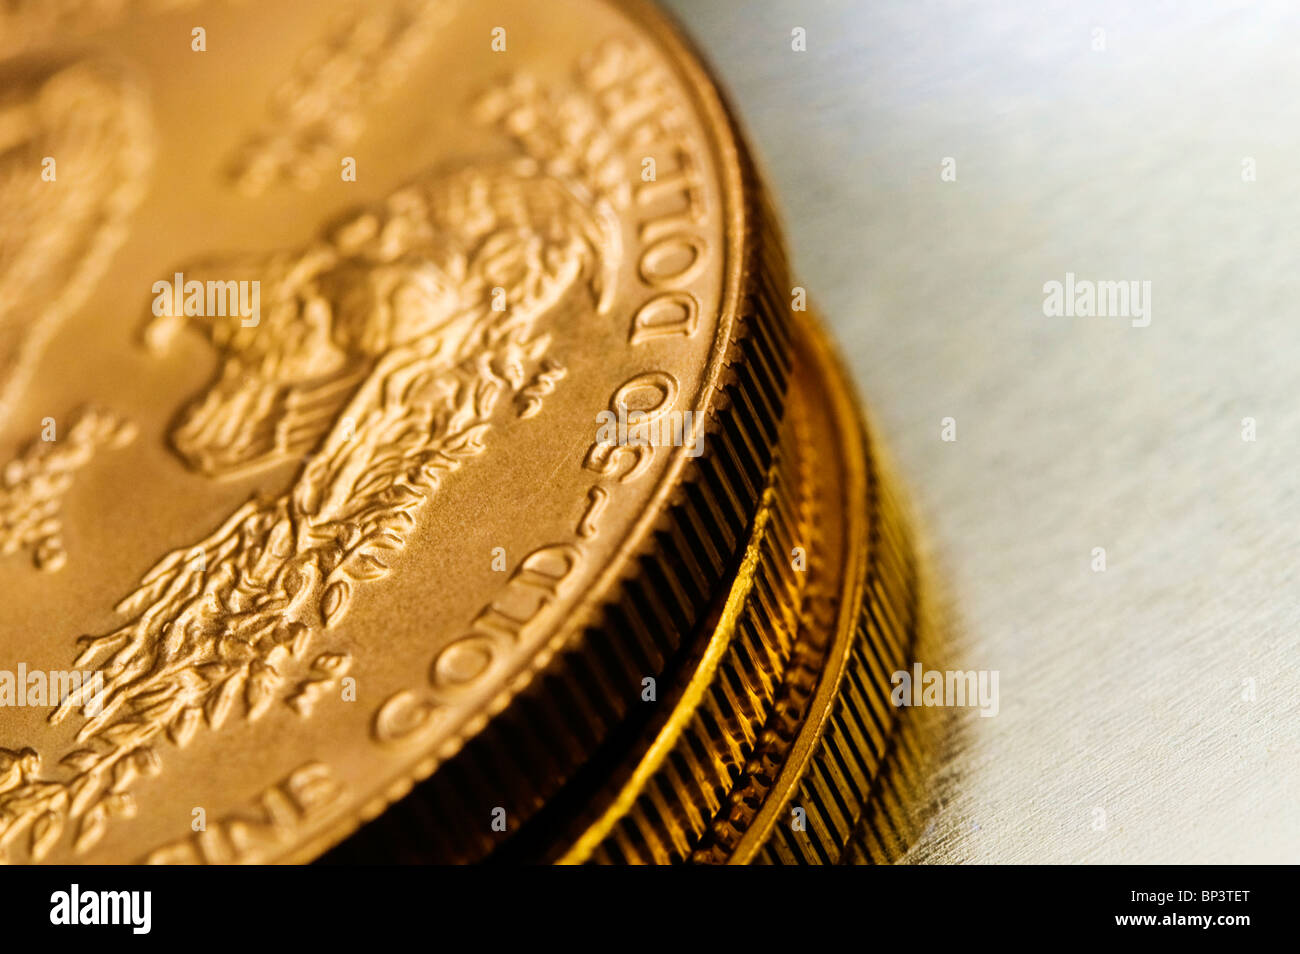 stack of gold bullions - Stock Image